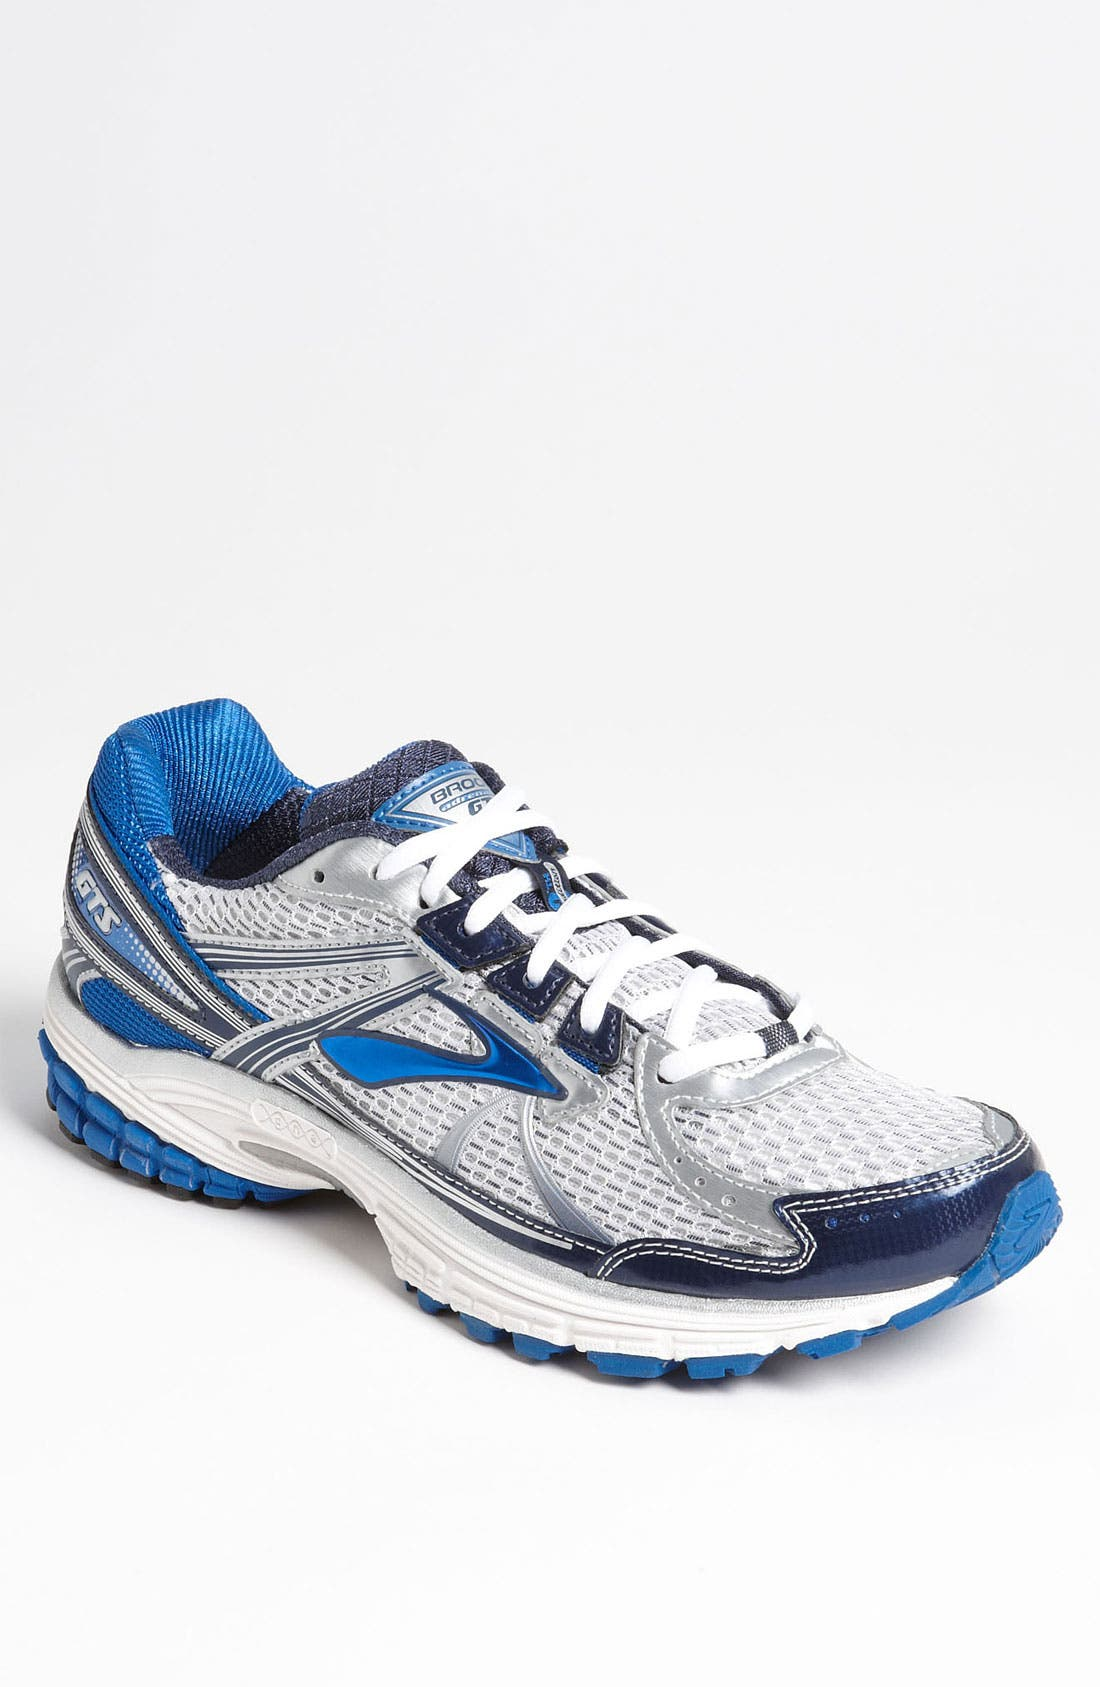 Alternate Image 1 Selected - Brooks 'Adrenaline GTS 13' Running Shoe (Men)(Regular Retail Price: $109.95)